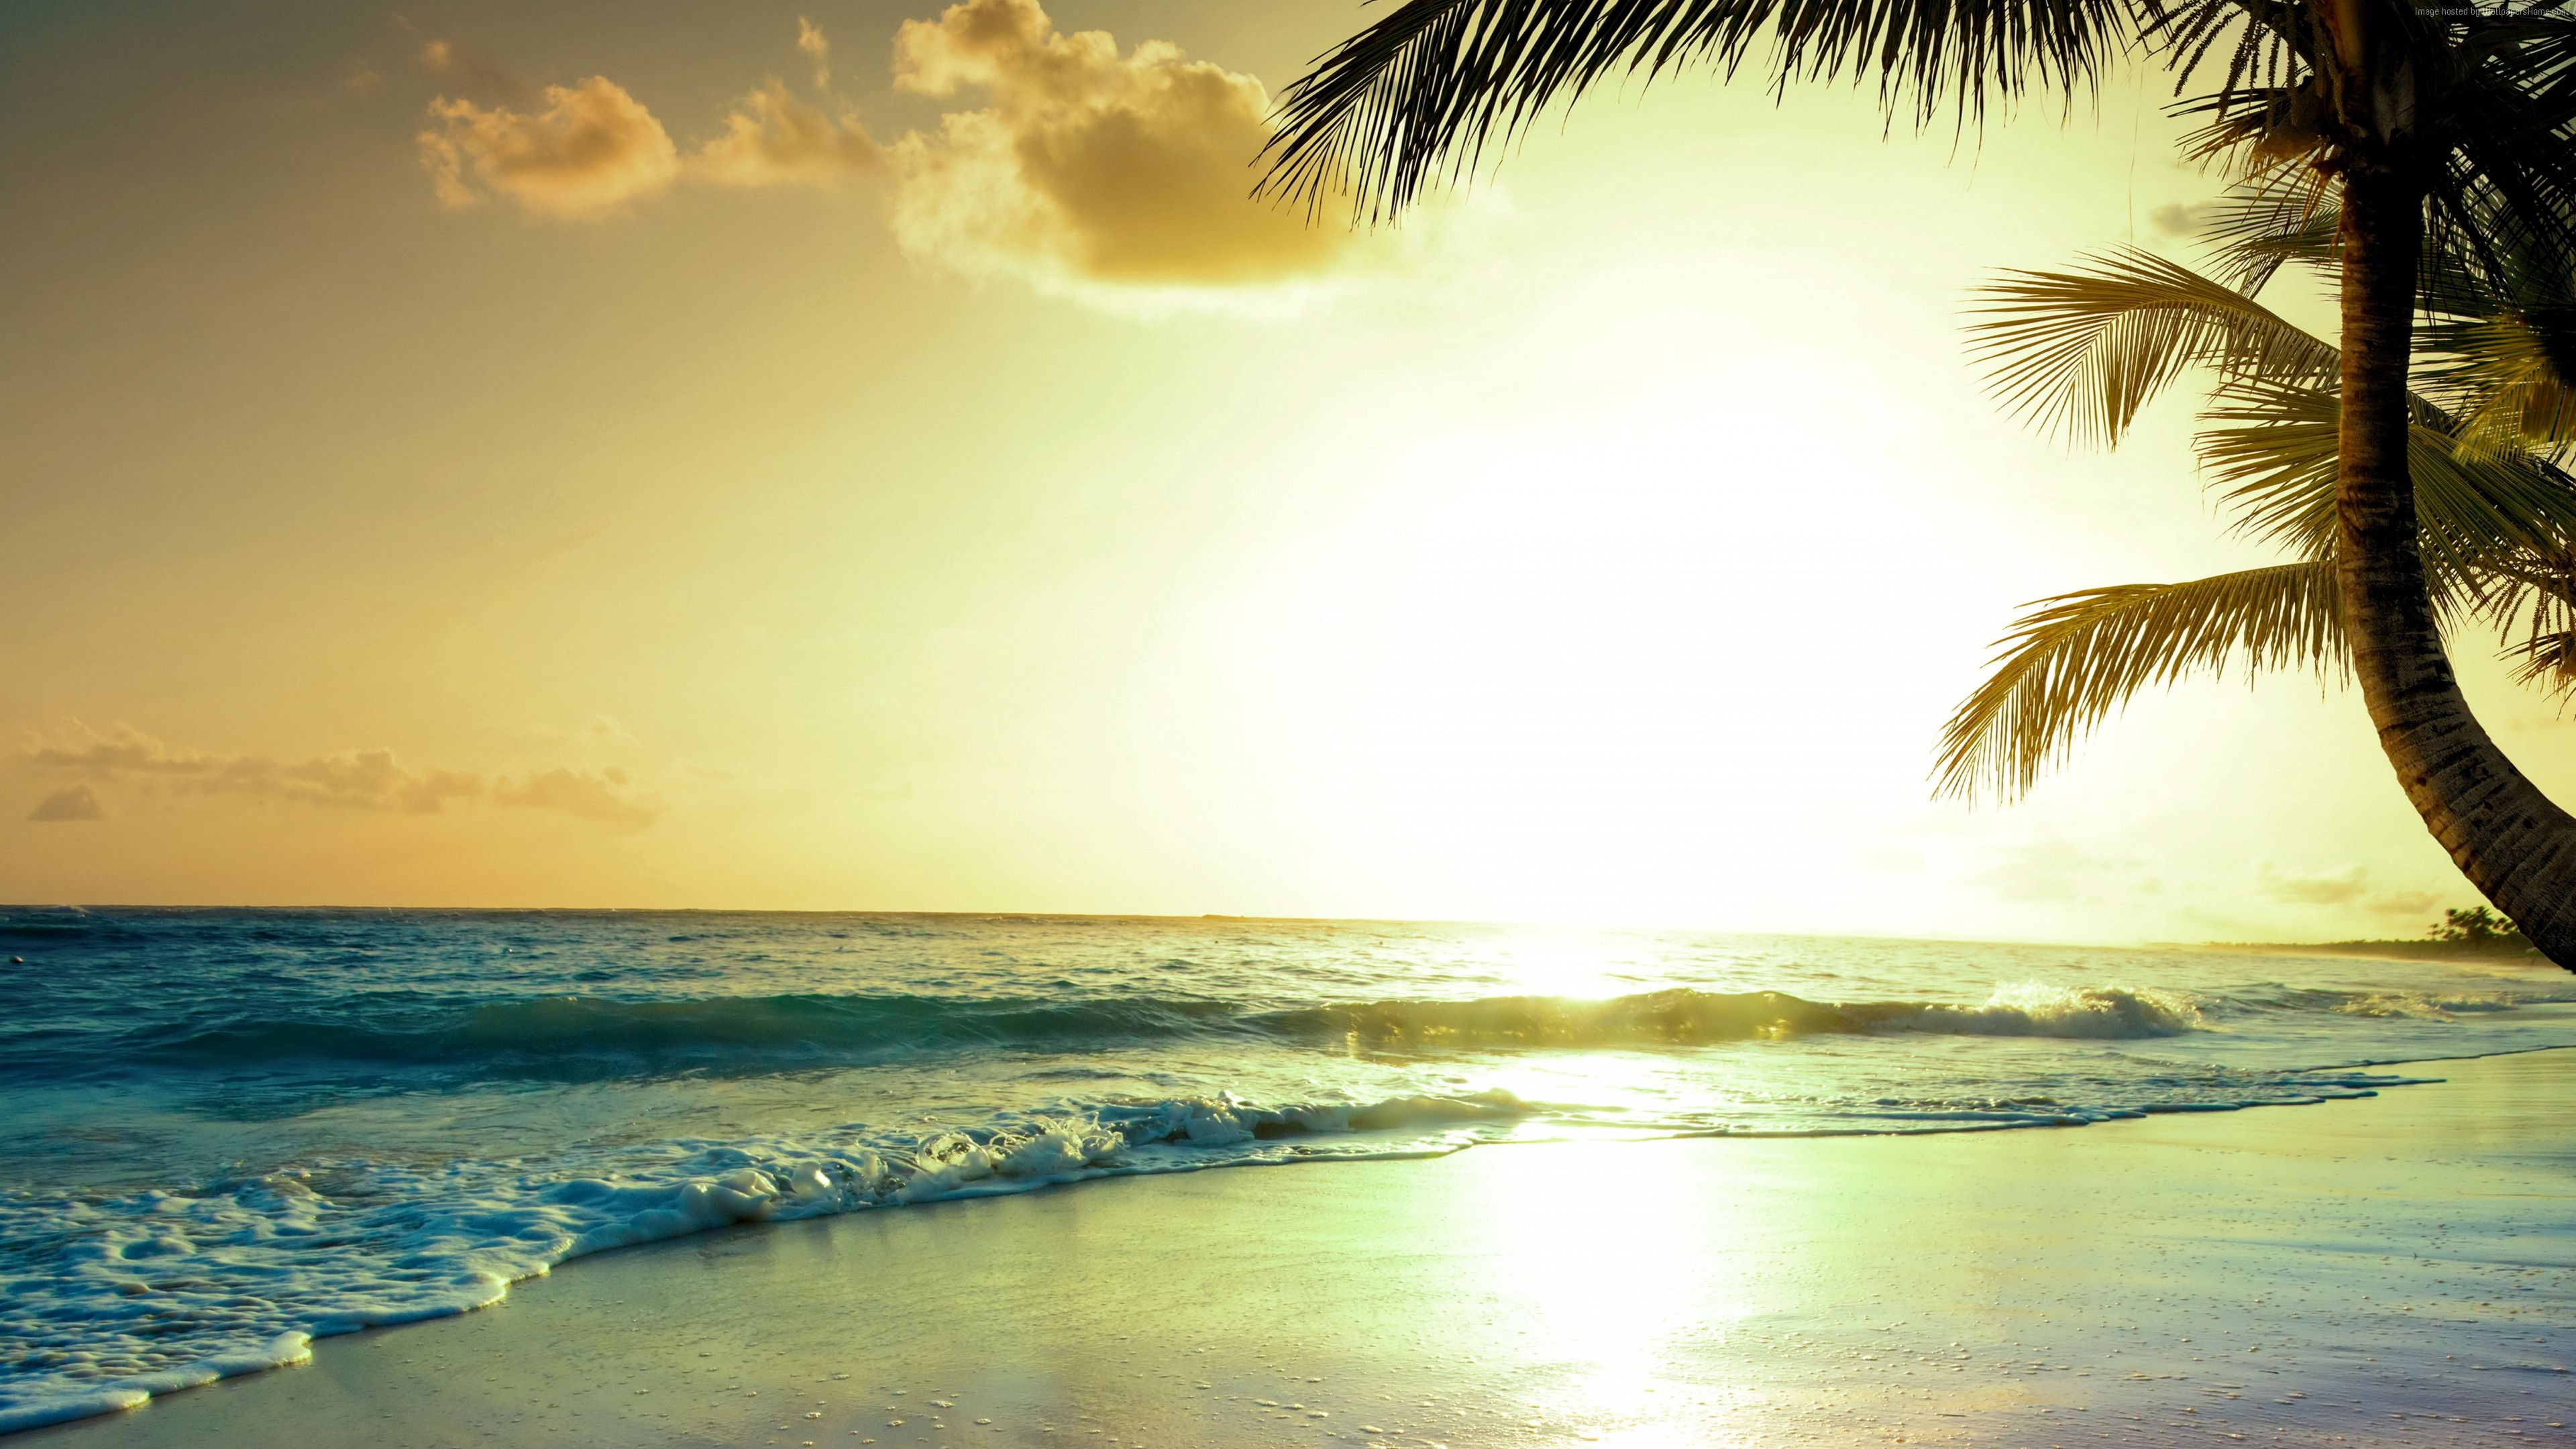 Wallpaper Tropical Beach 5k 4k Wallpaper Paradise Sunset